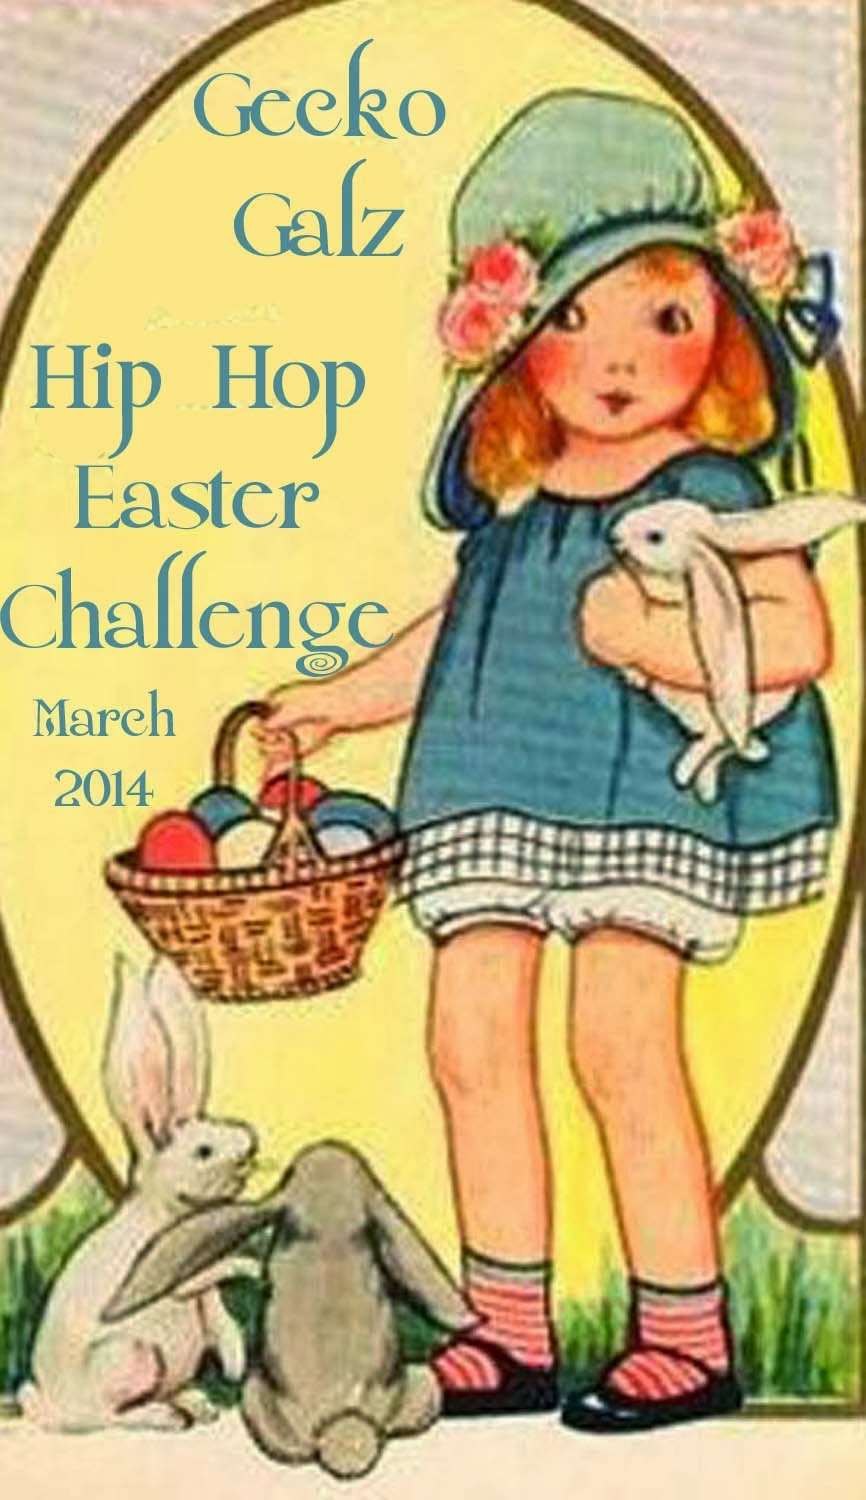 Join us for a Hip Hop Easter Challenge